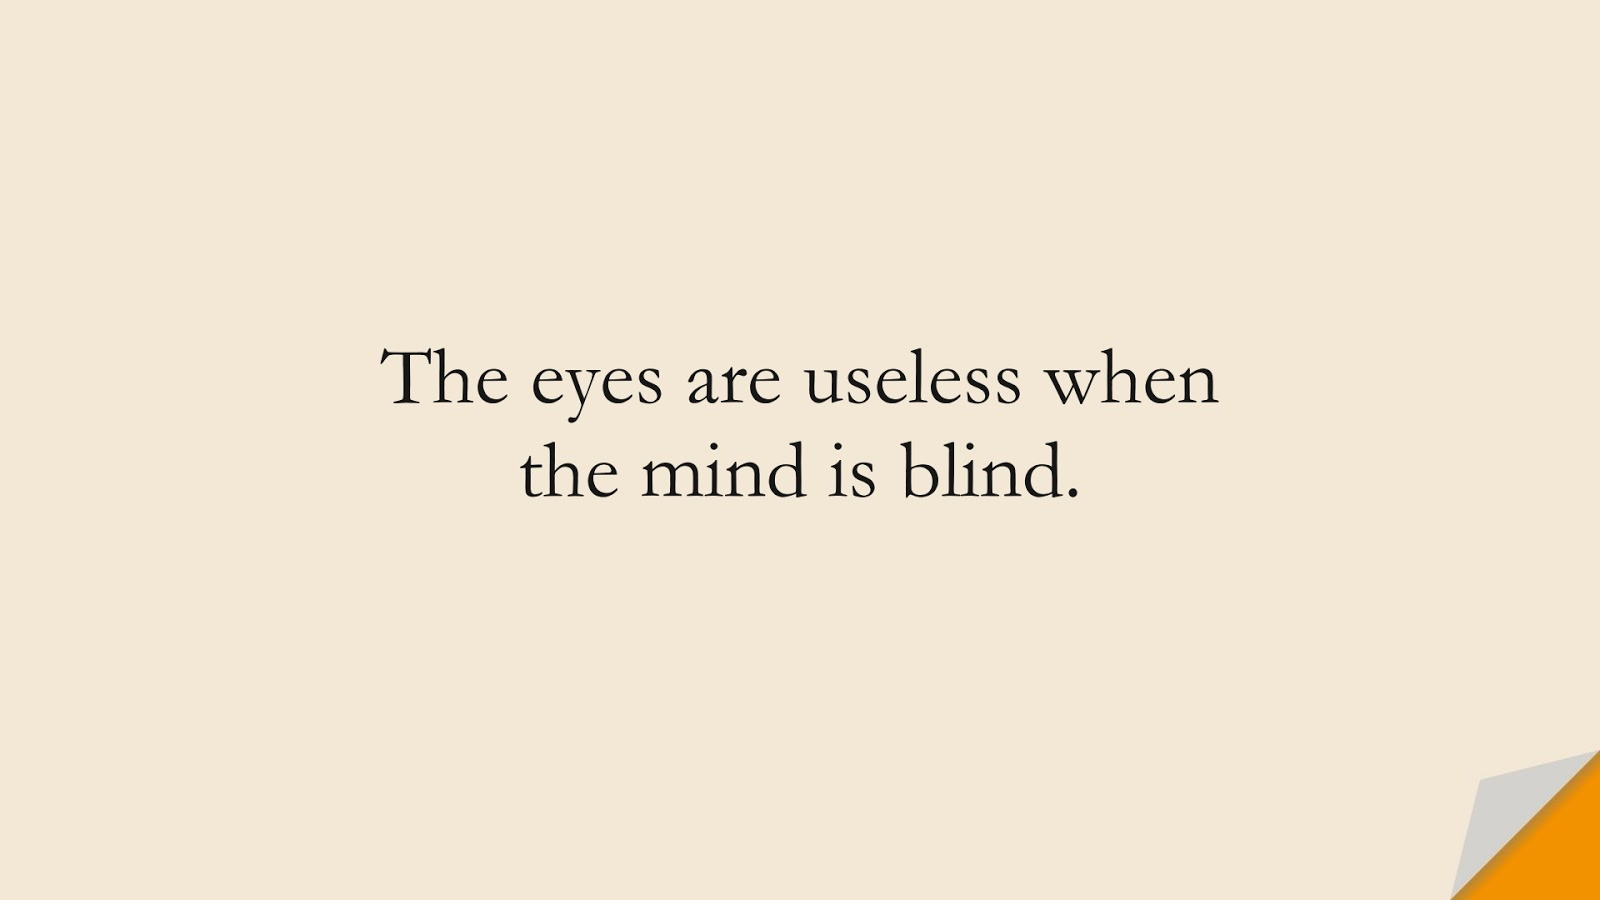 The eyes are useless when the mind is blind.FALSE